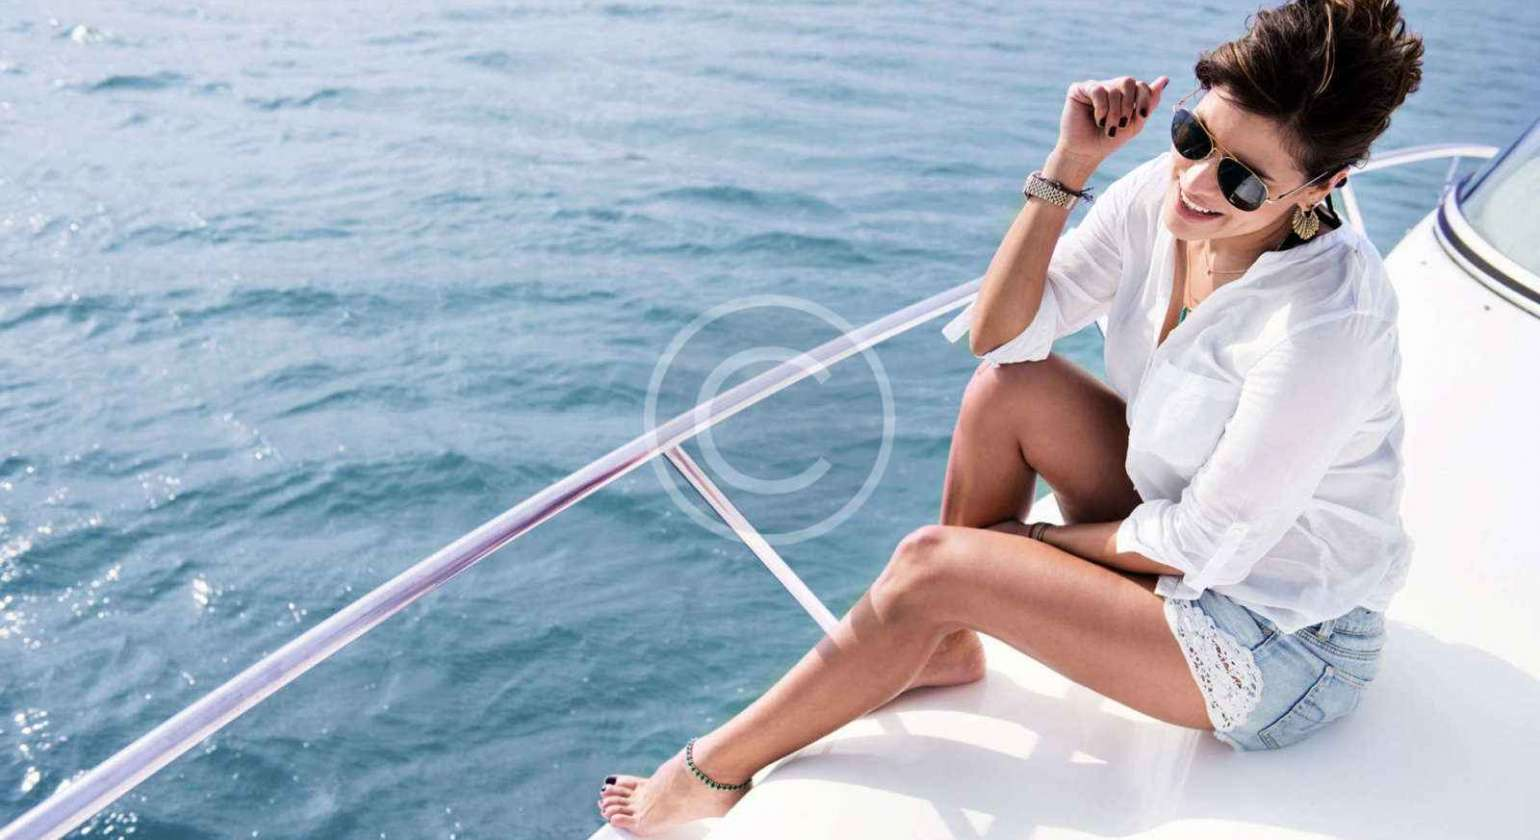 5 Reasons Why Spring is Ideal for a Yacht Charter